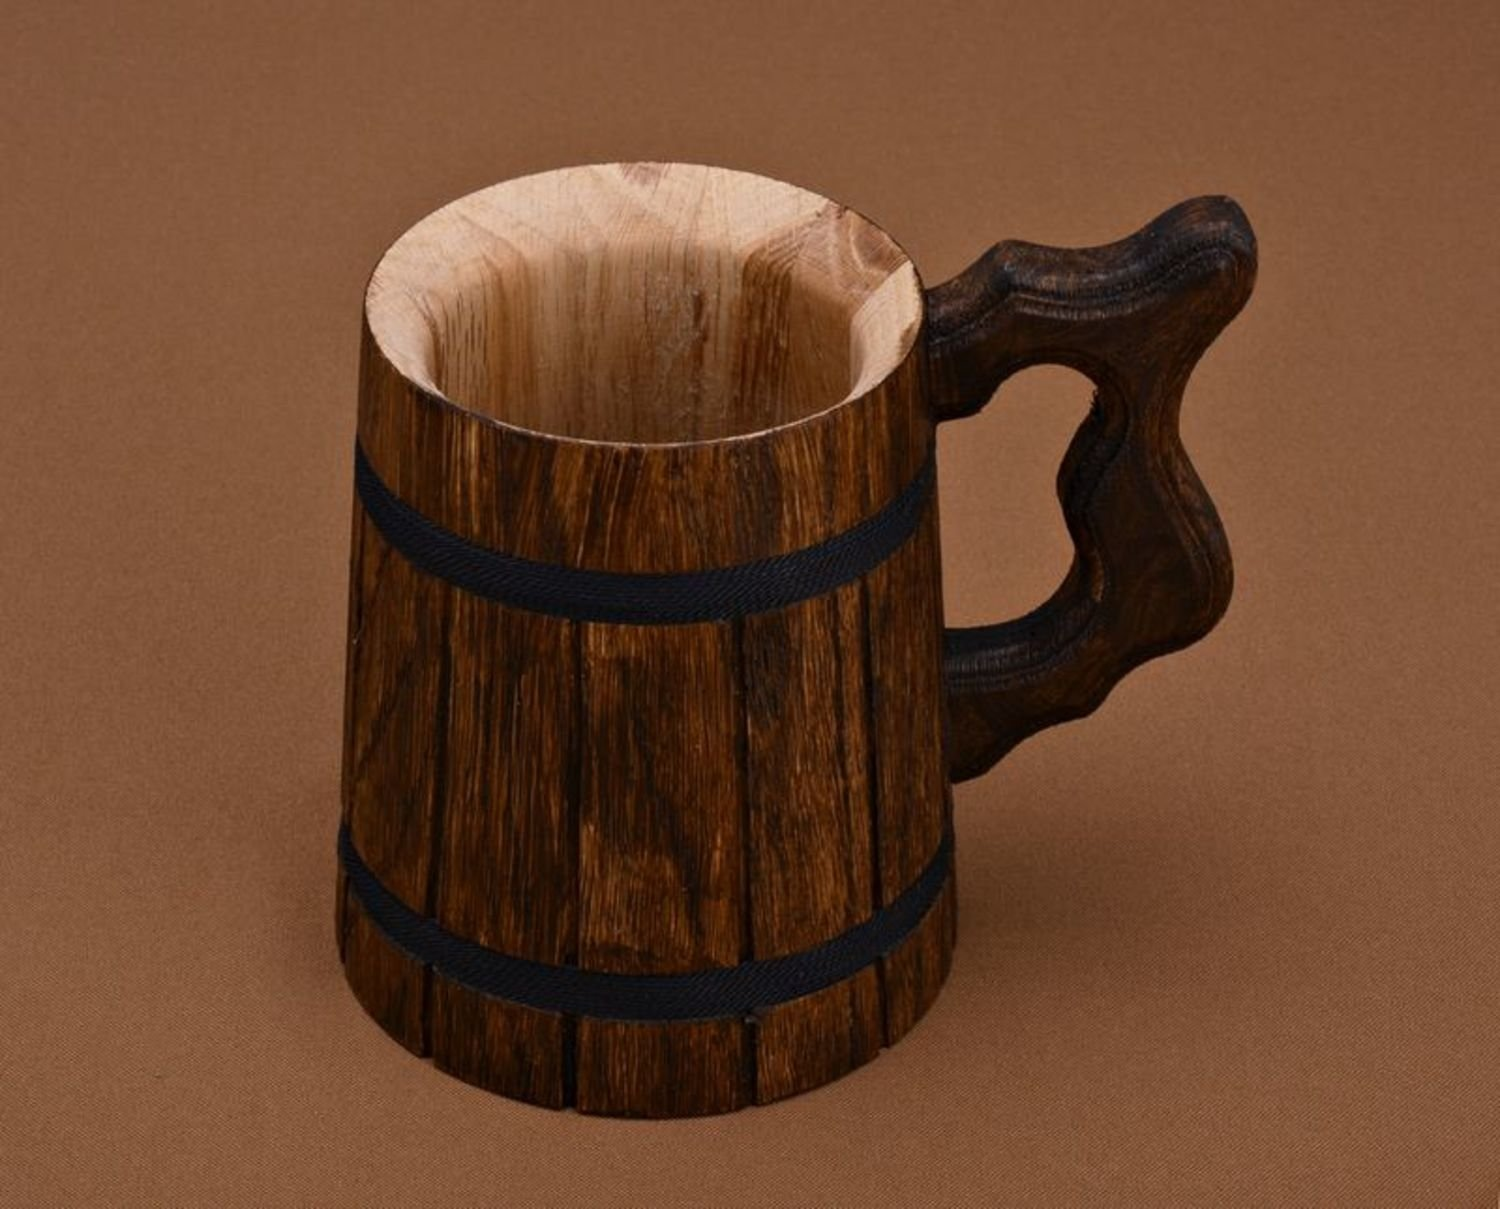 Decorative Handmade Beer Mug Made of Wood Eco Friendly Great Gift Ideas